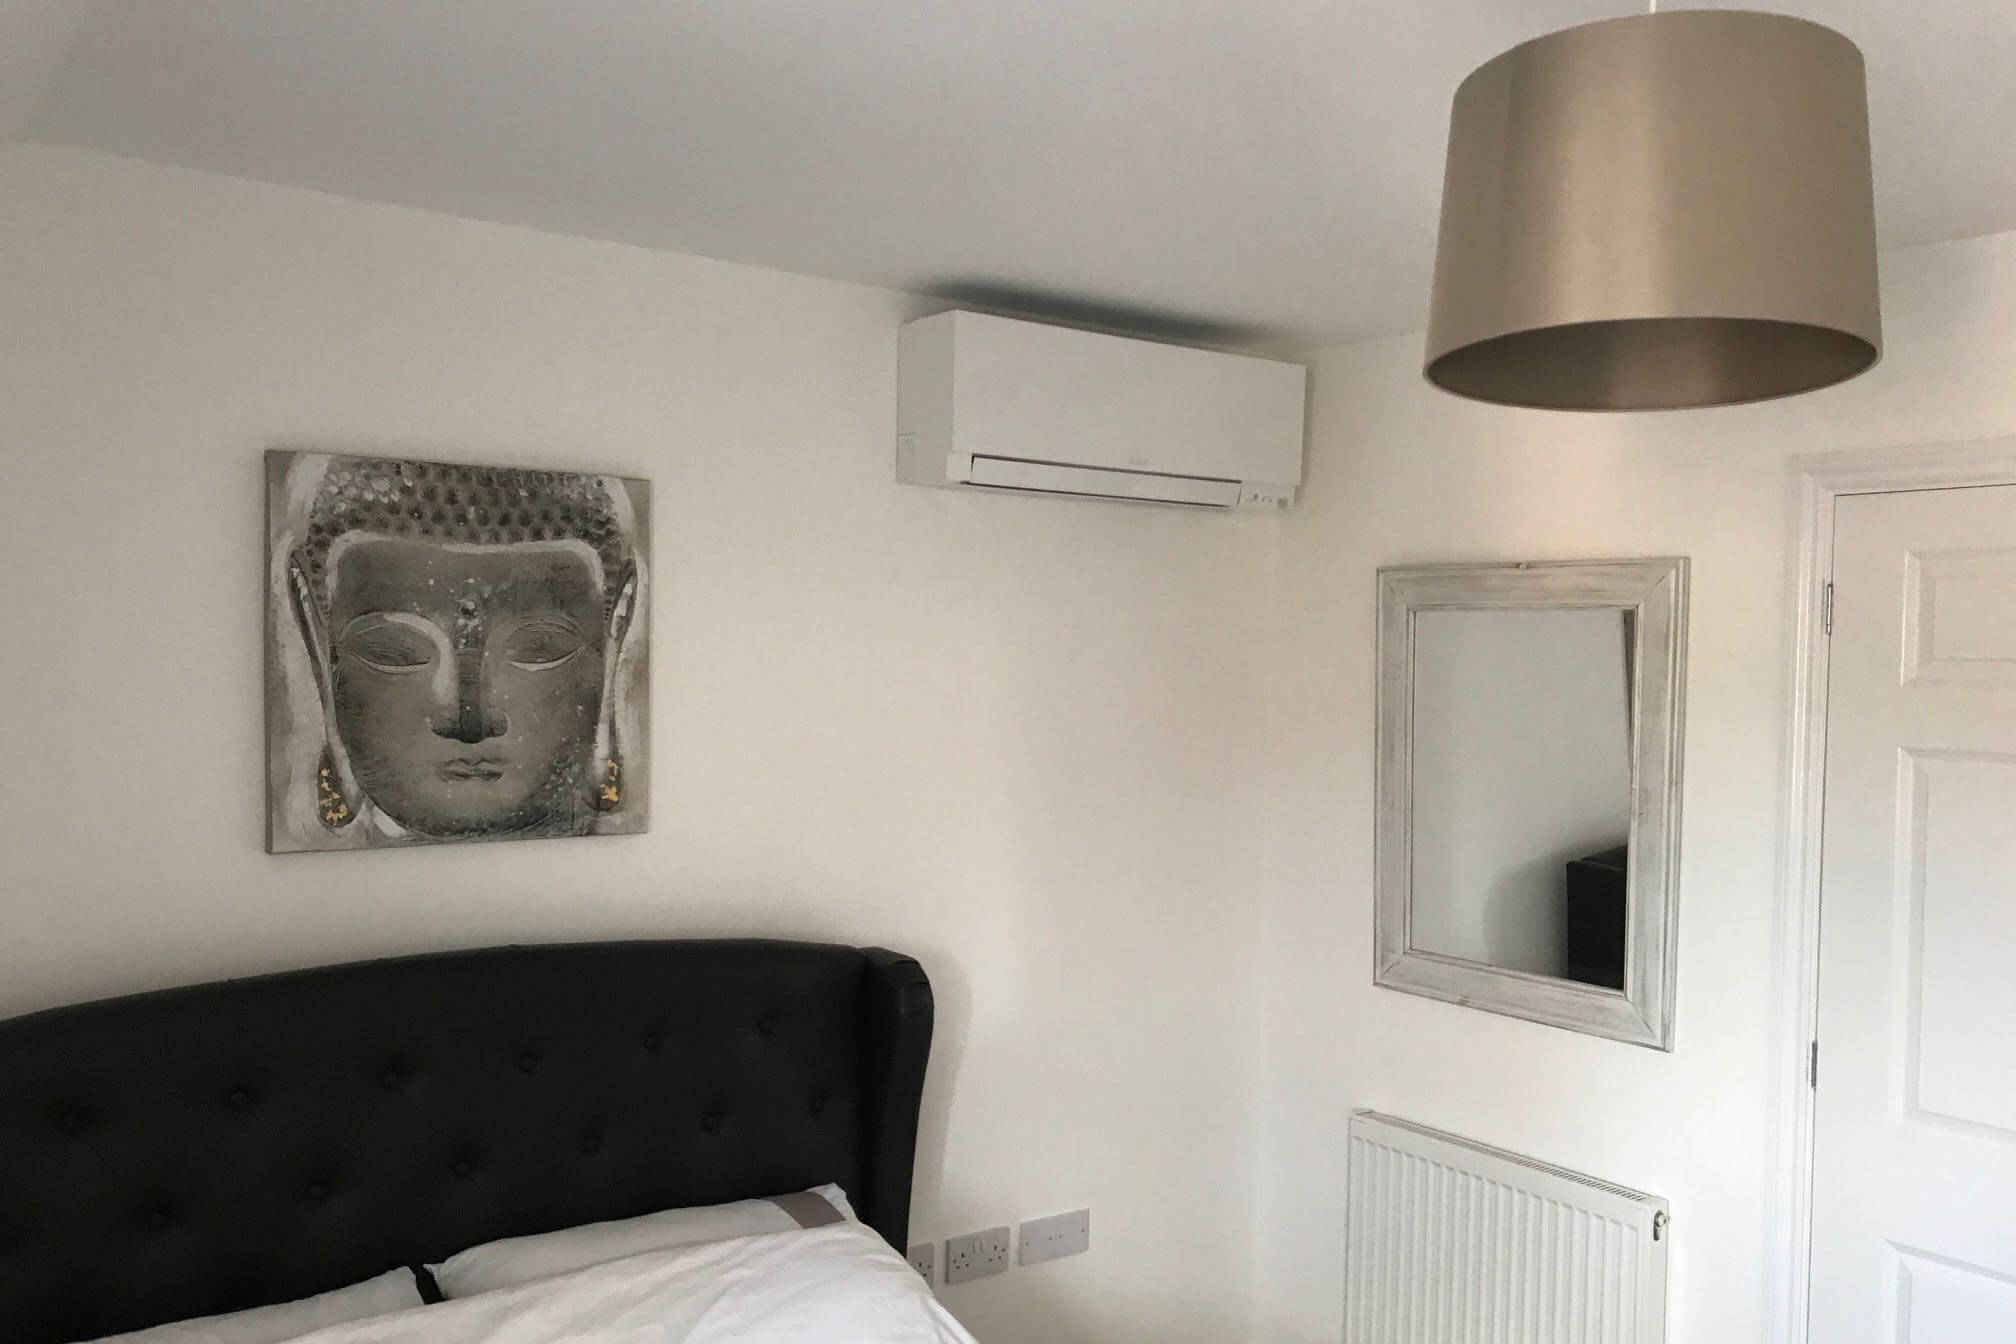 White mall counted mitsubishi domestic air conditioning unit in white and silver bedroom above bed